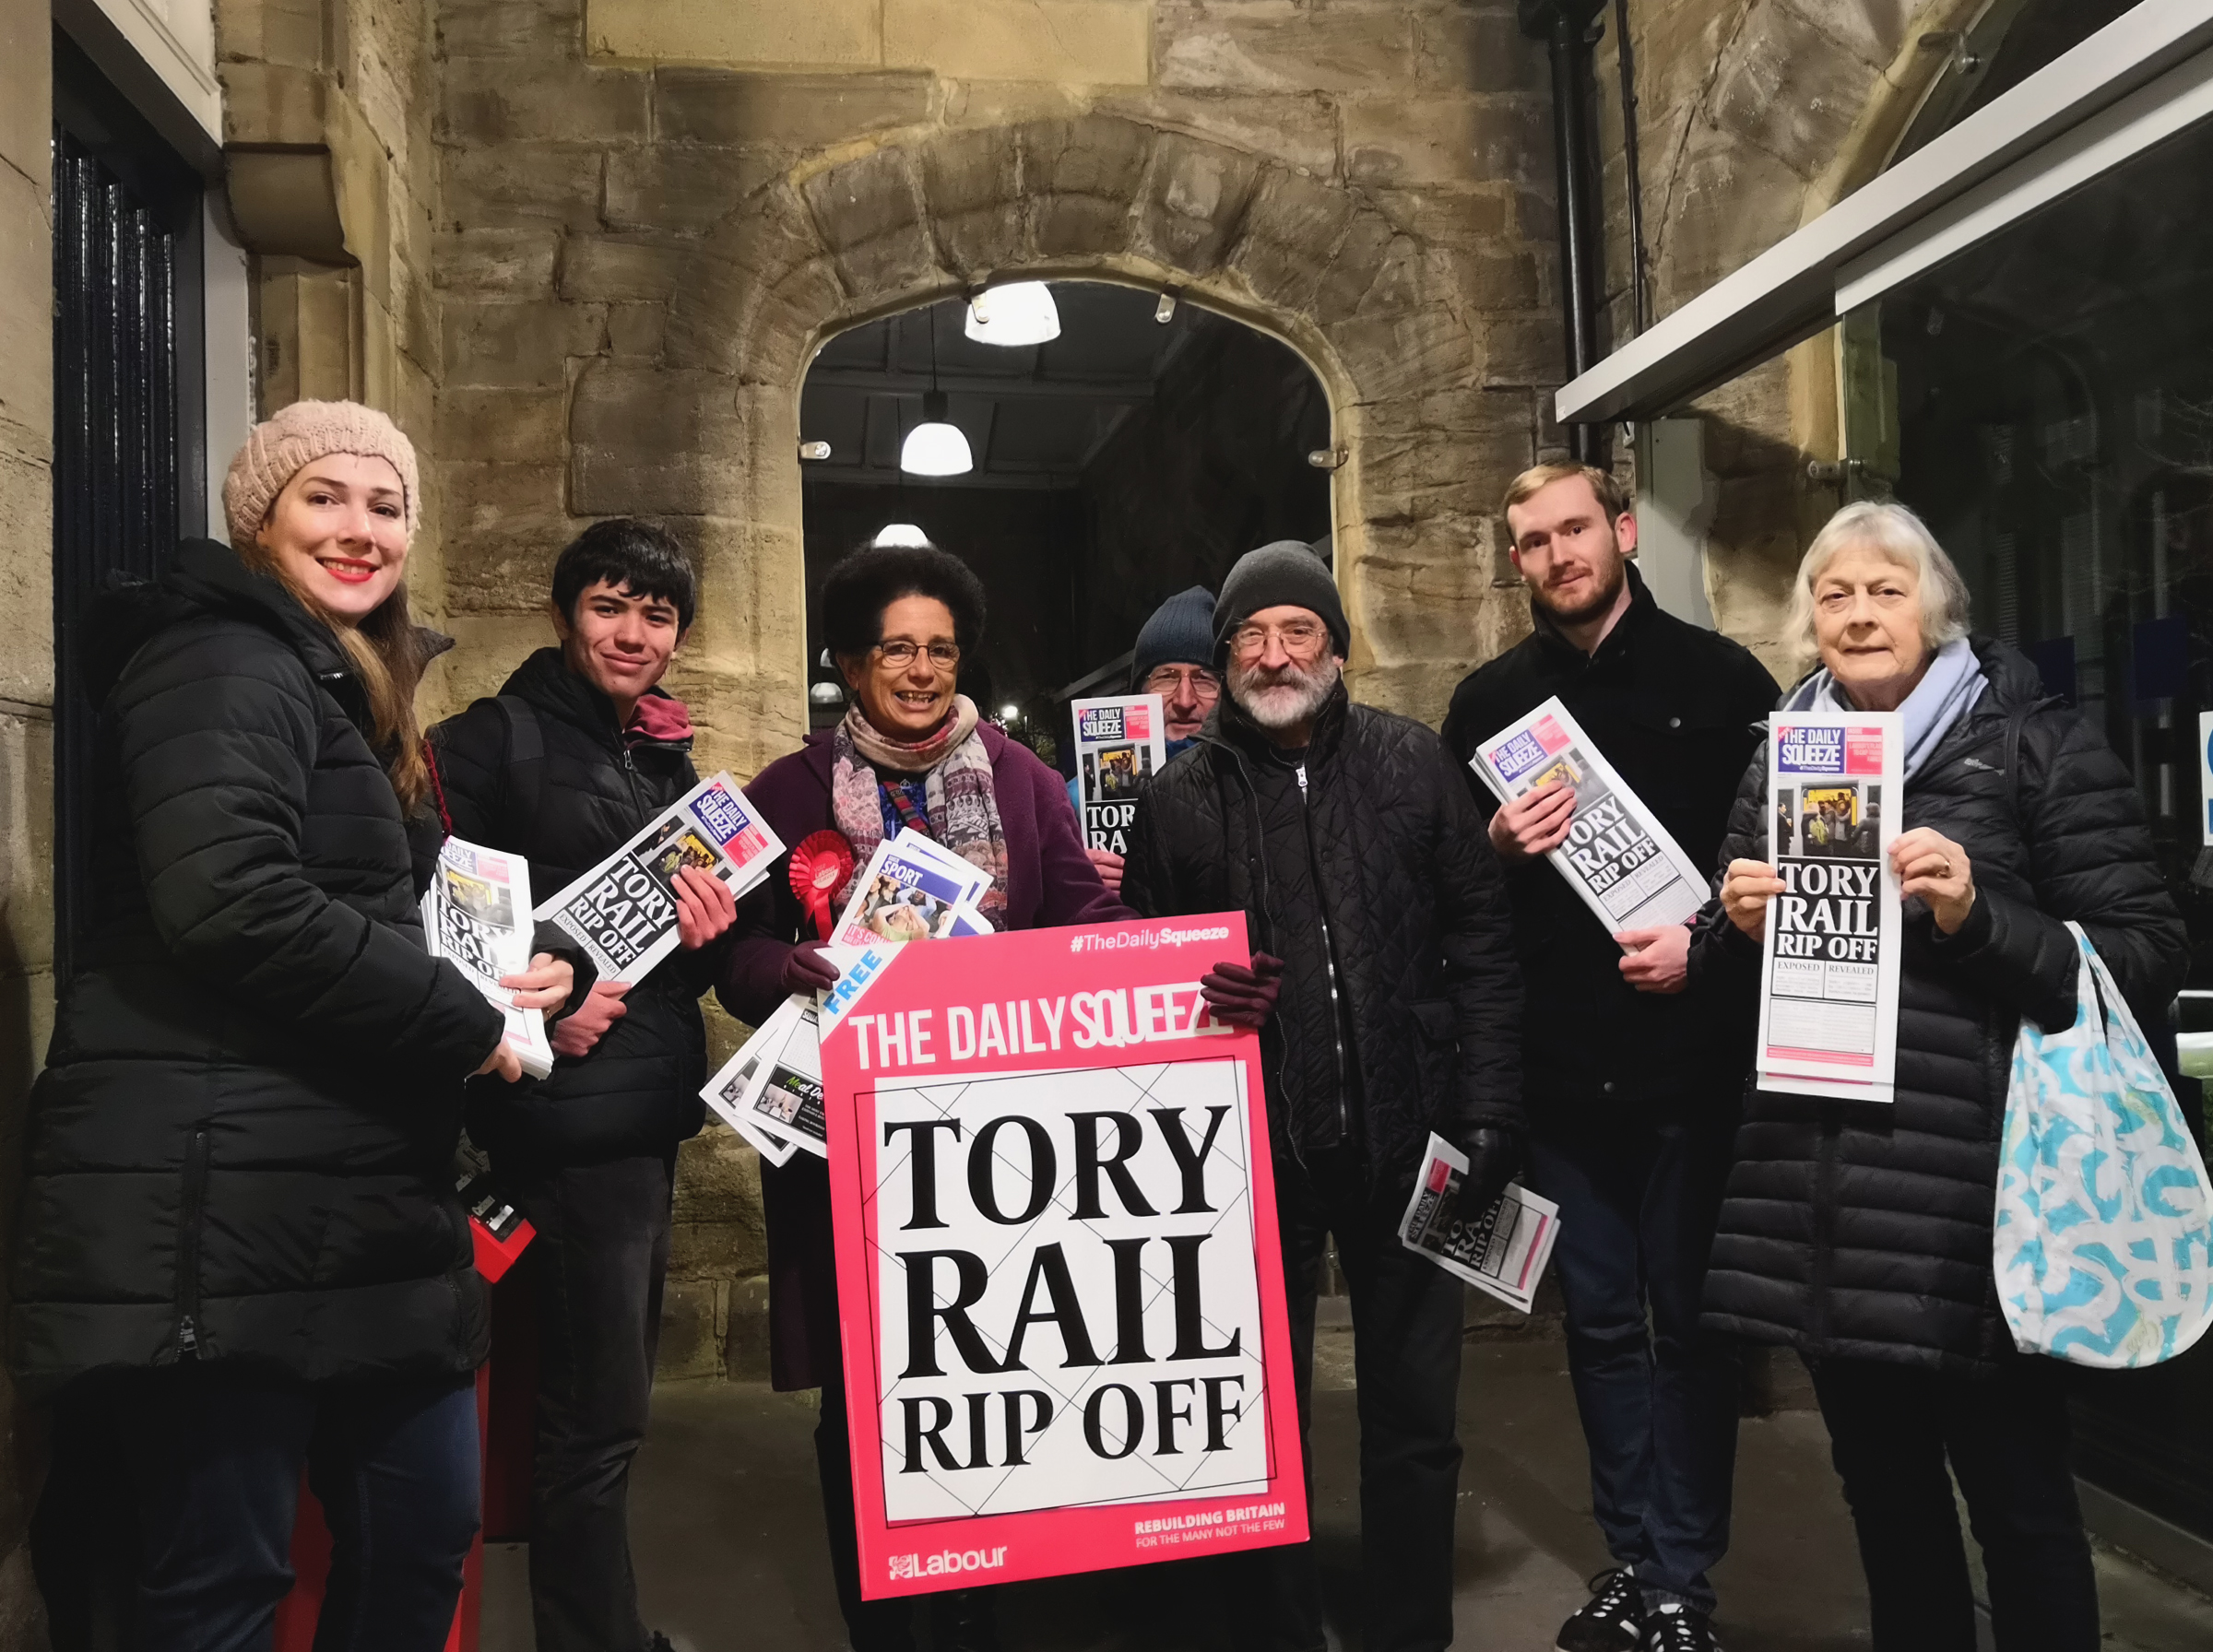 Tory Rail Rip-Off